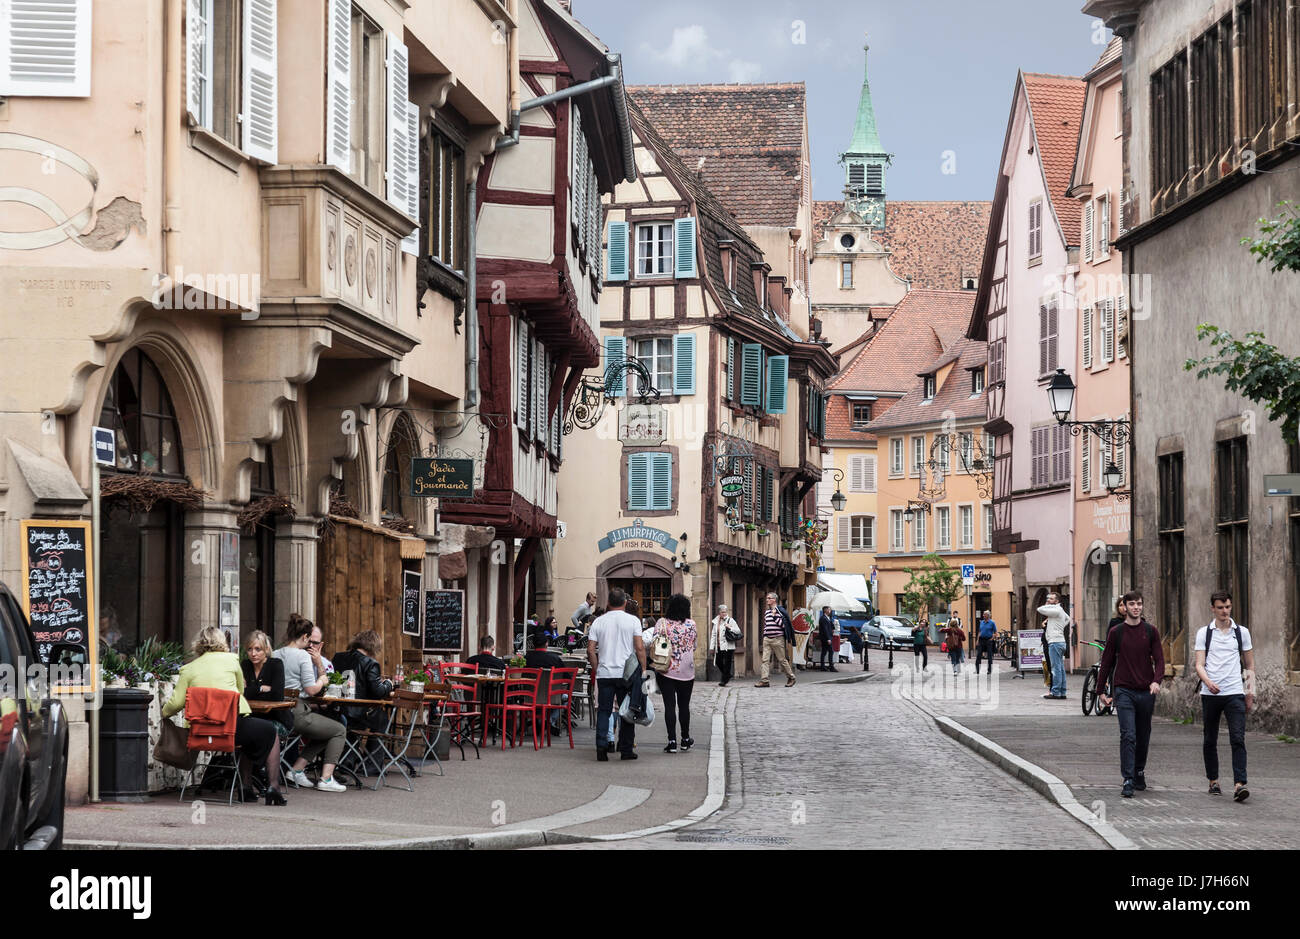 People walking in and sitting in pavement cafes in the medieval half-timbered buildings - now homes and businesses - Stock Image